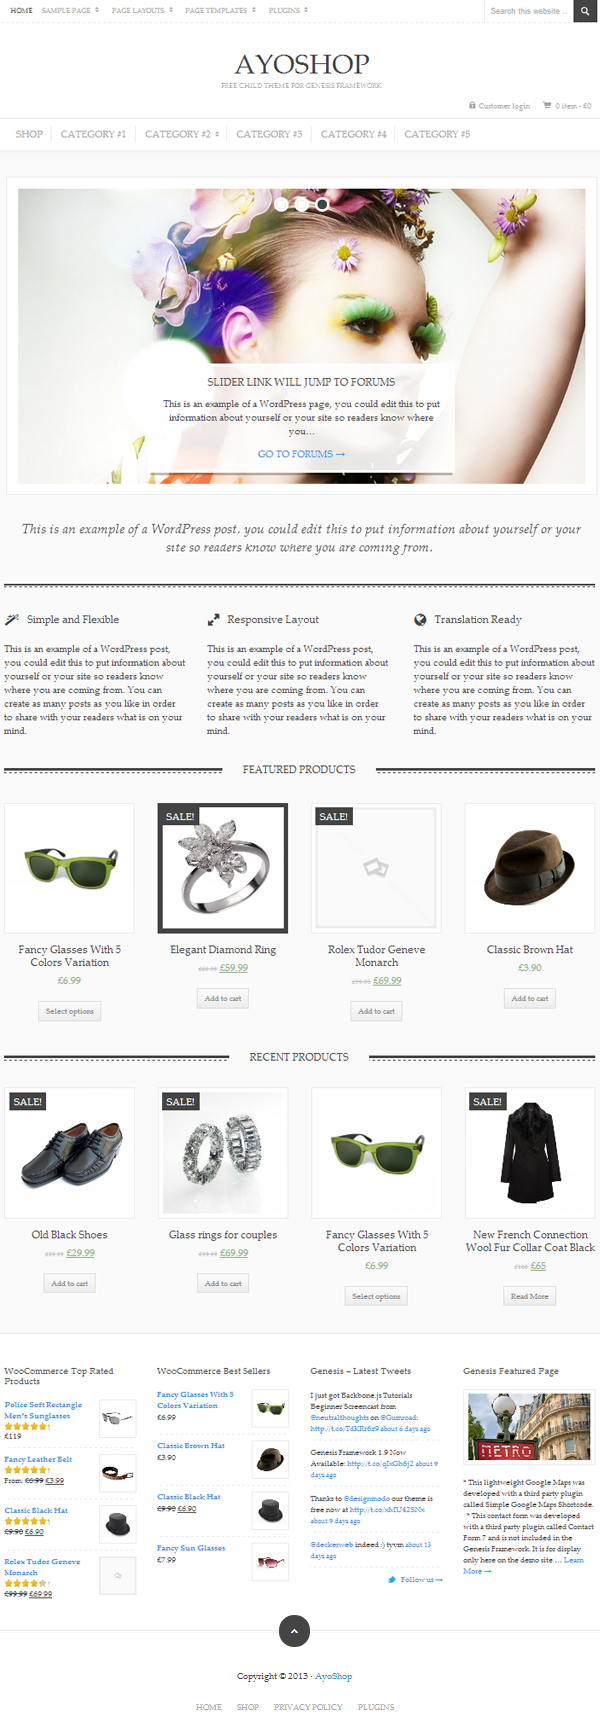 AyoShop Responsive eCommerce WordPress Themes - 4